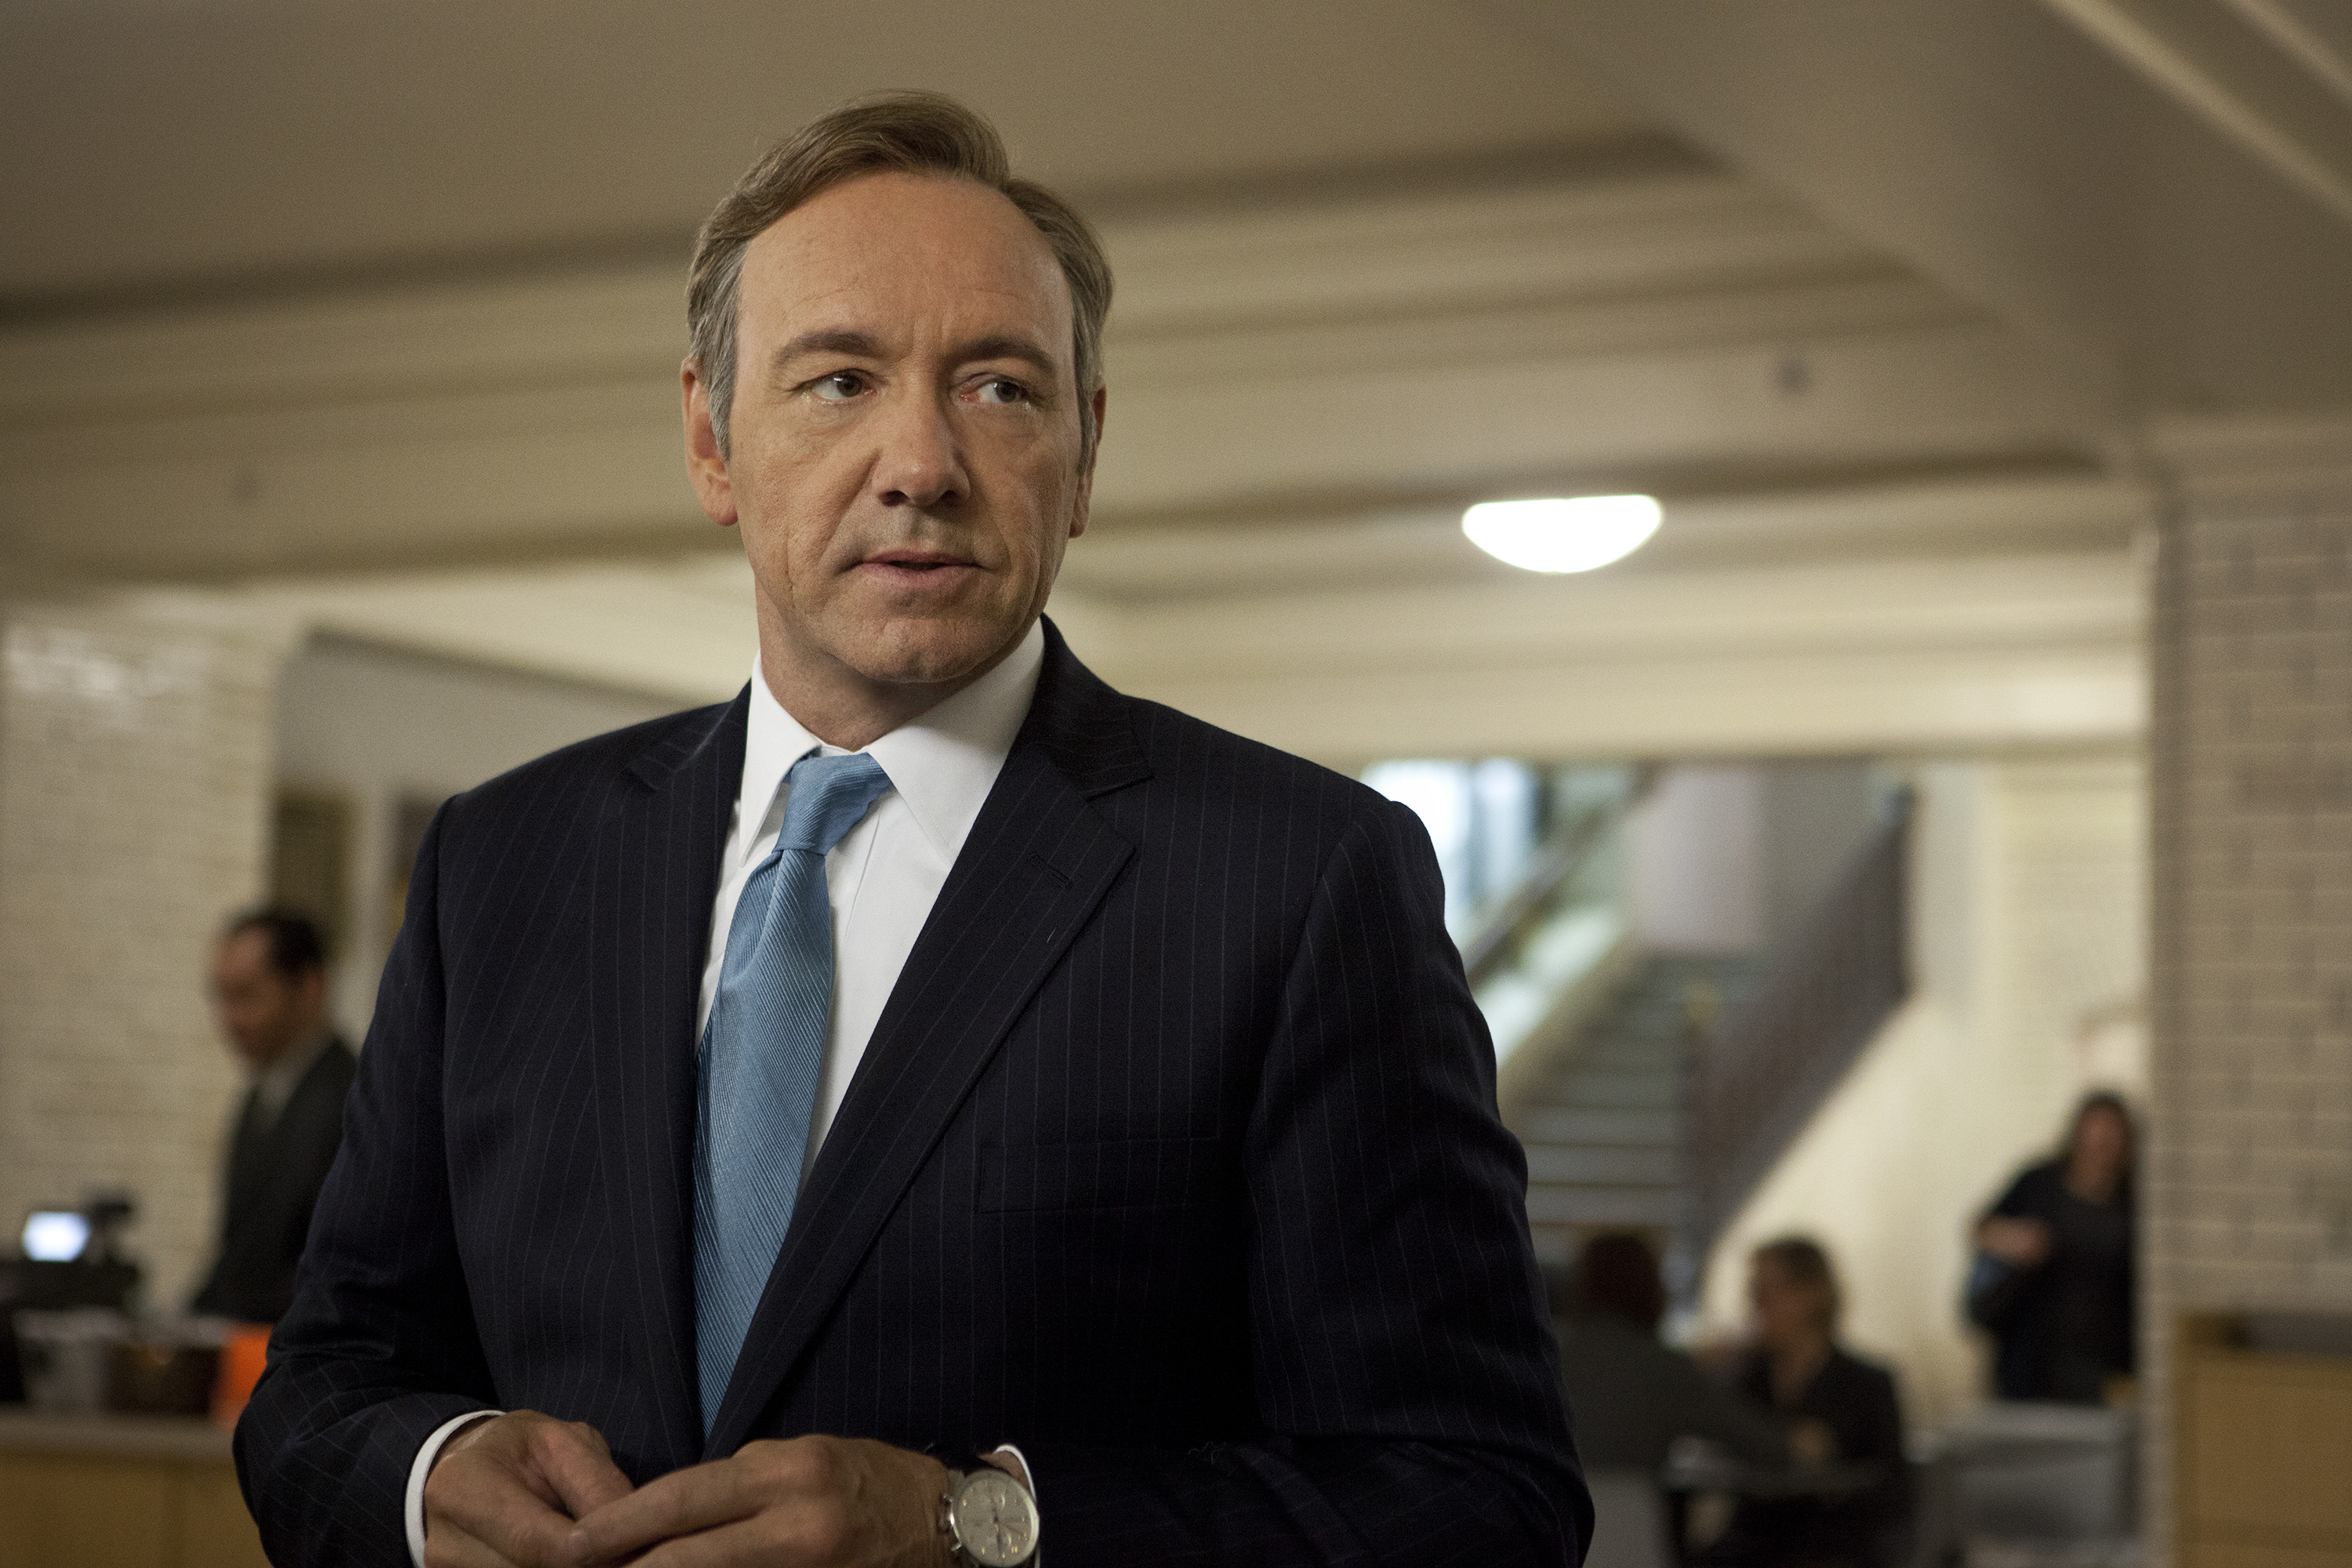 House of Cards Season Six Being Reworked to Potentially Write Out